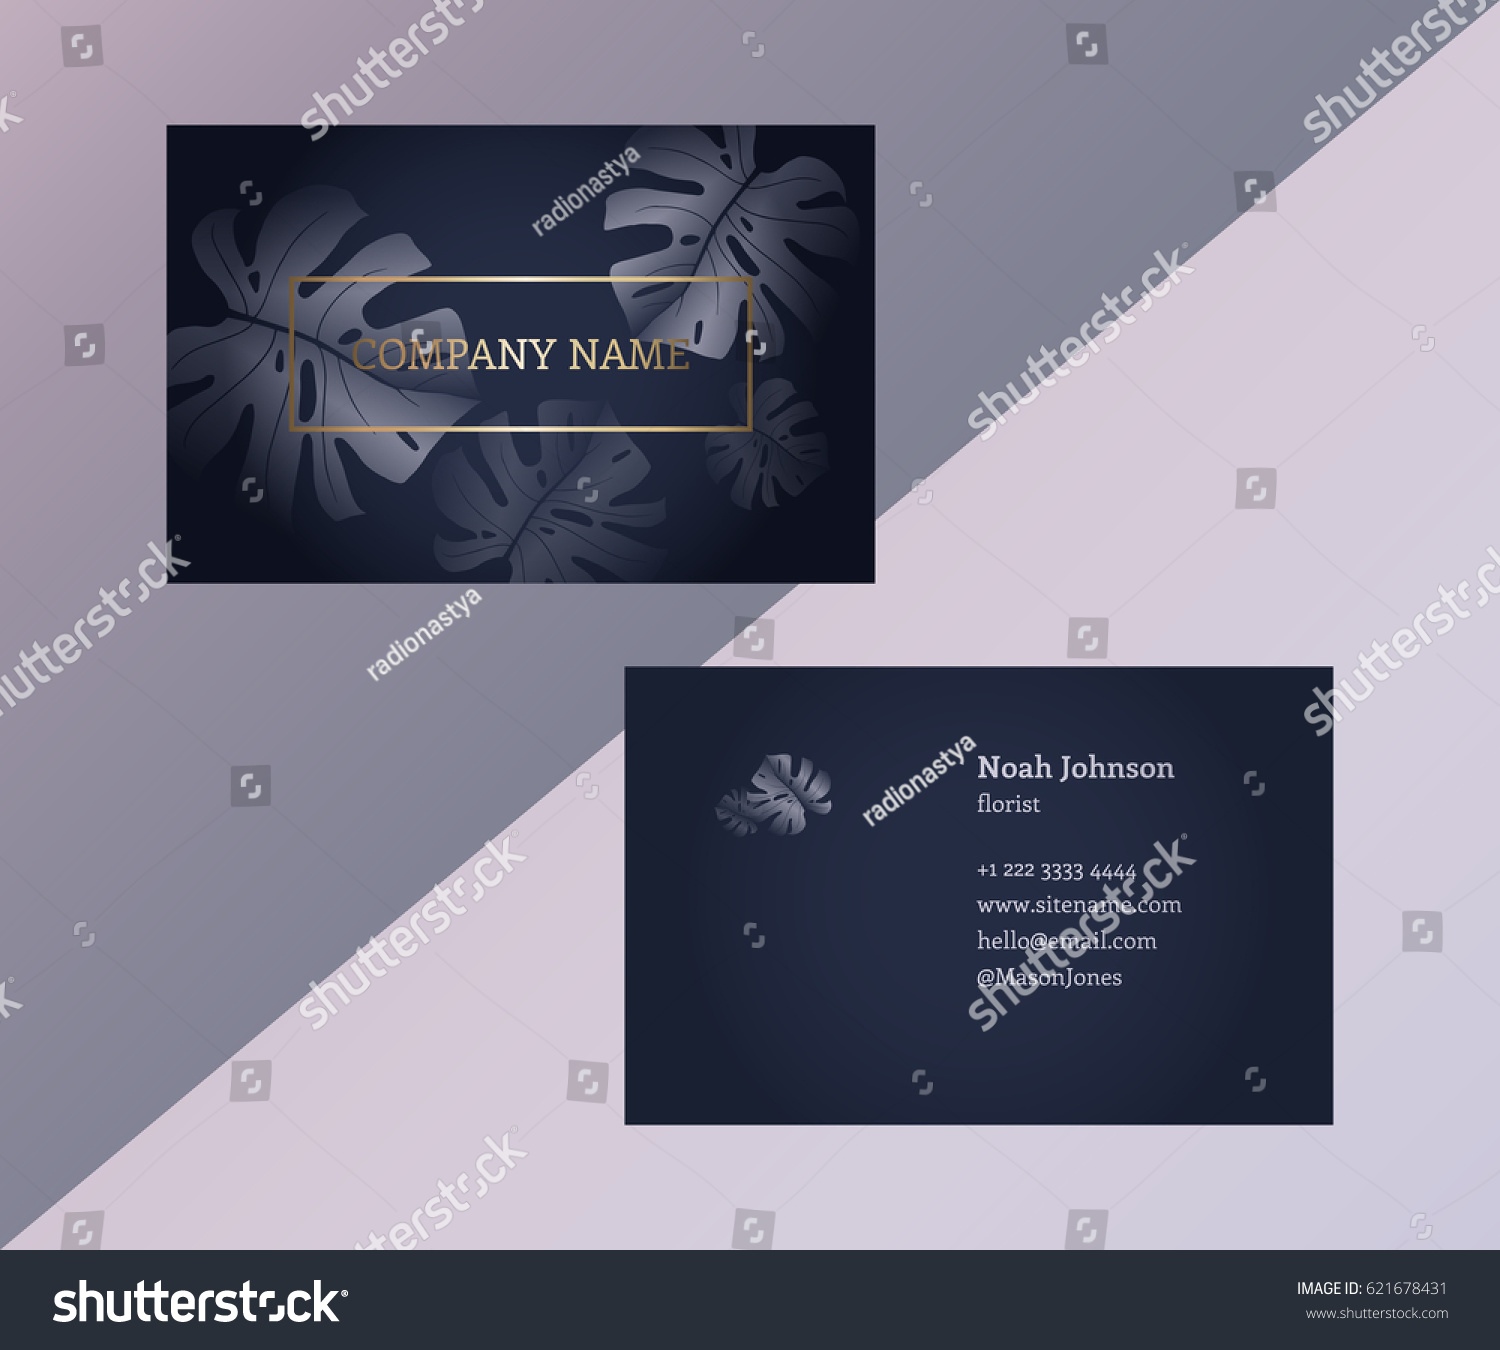 Template Double Sided Business Card Trendy Stock Vector 621678431 ...